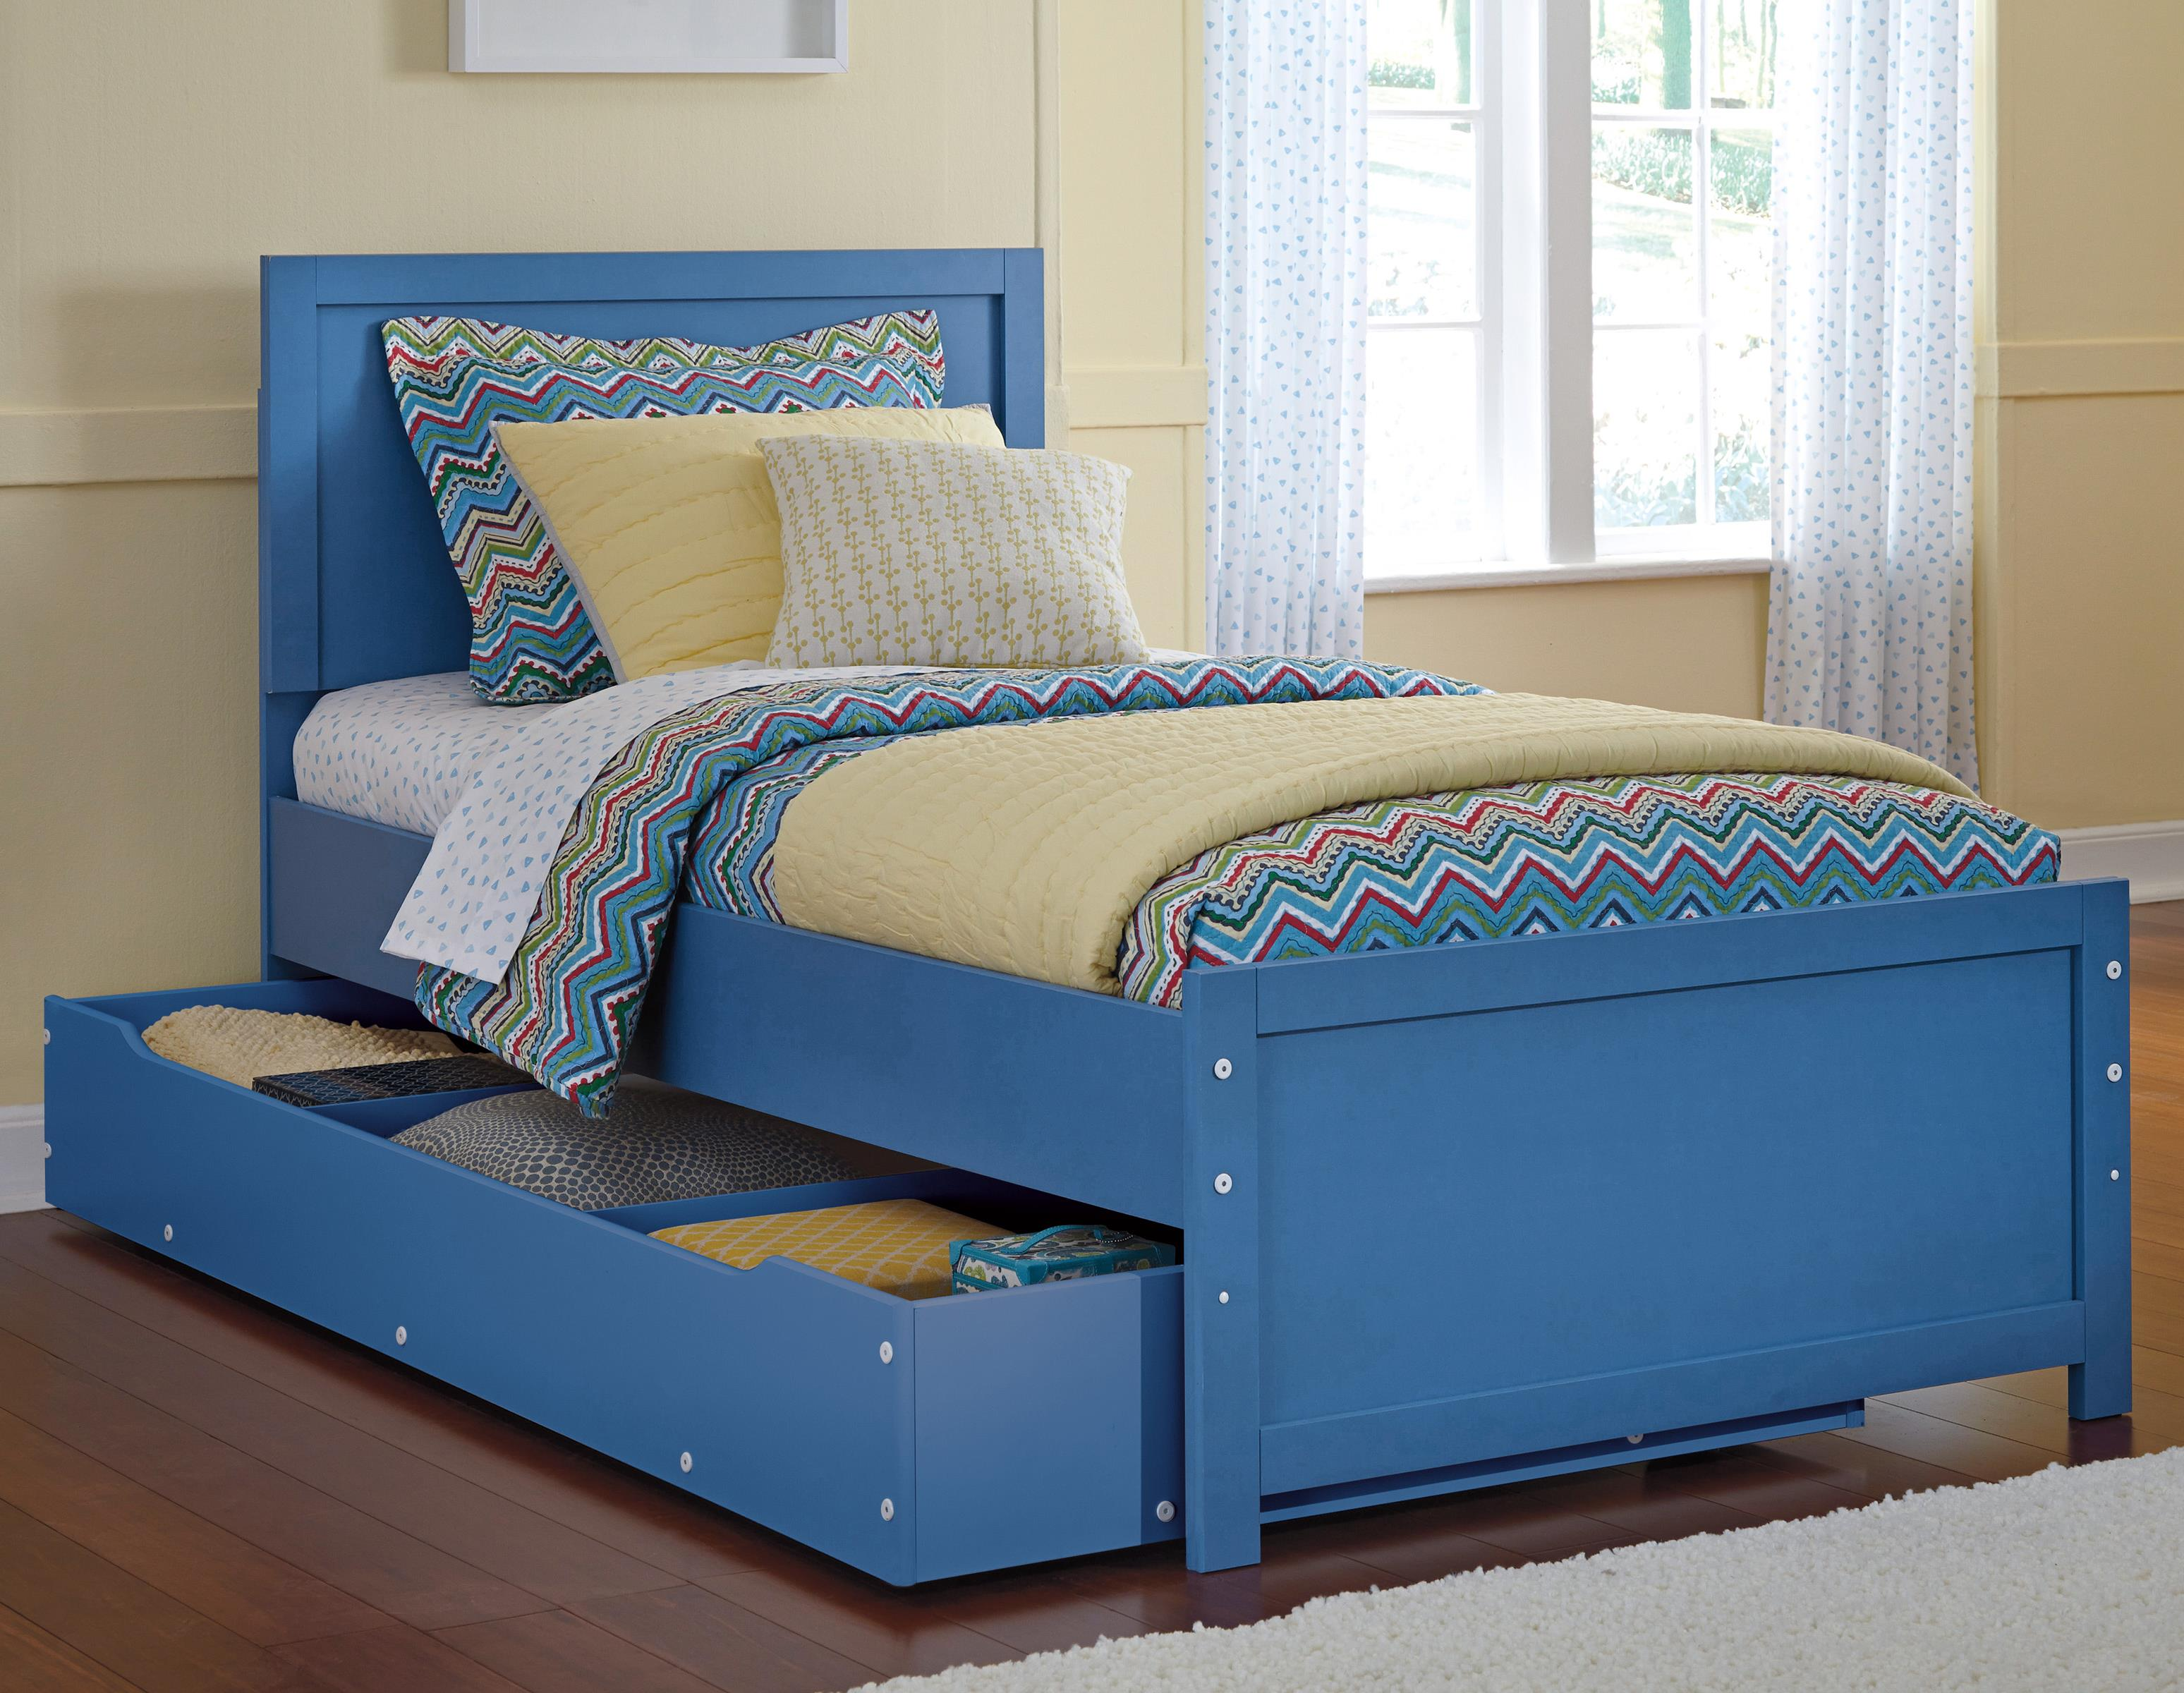 Signature Design by Ashley Bronilly Twin Panel Bed w/ Trundle Under Bed Storage - Item Number: B045-53+52+82+60+B100-11